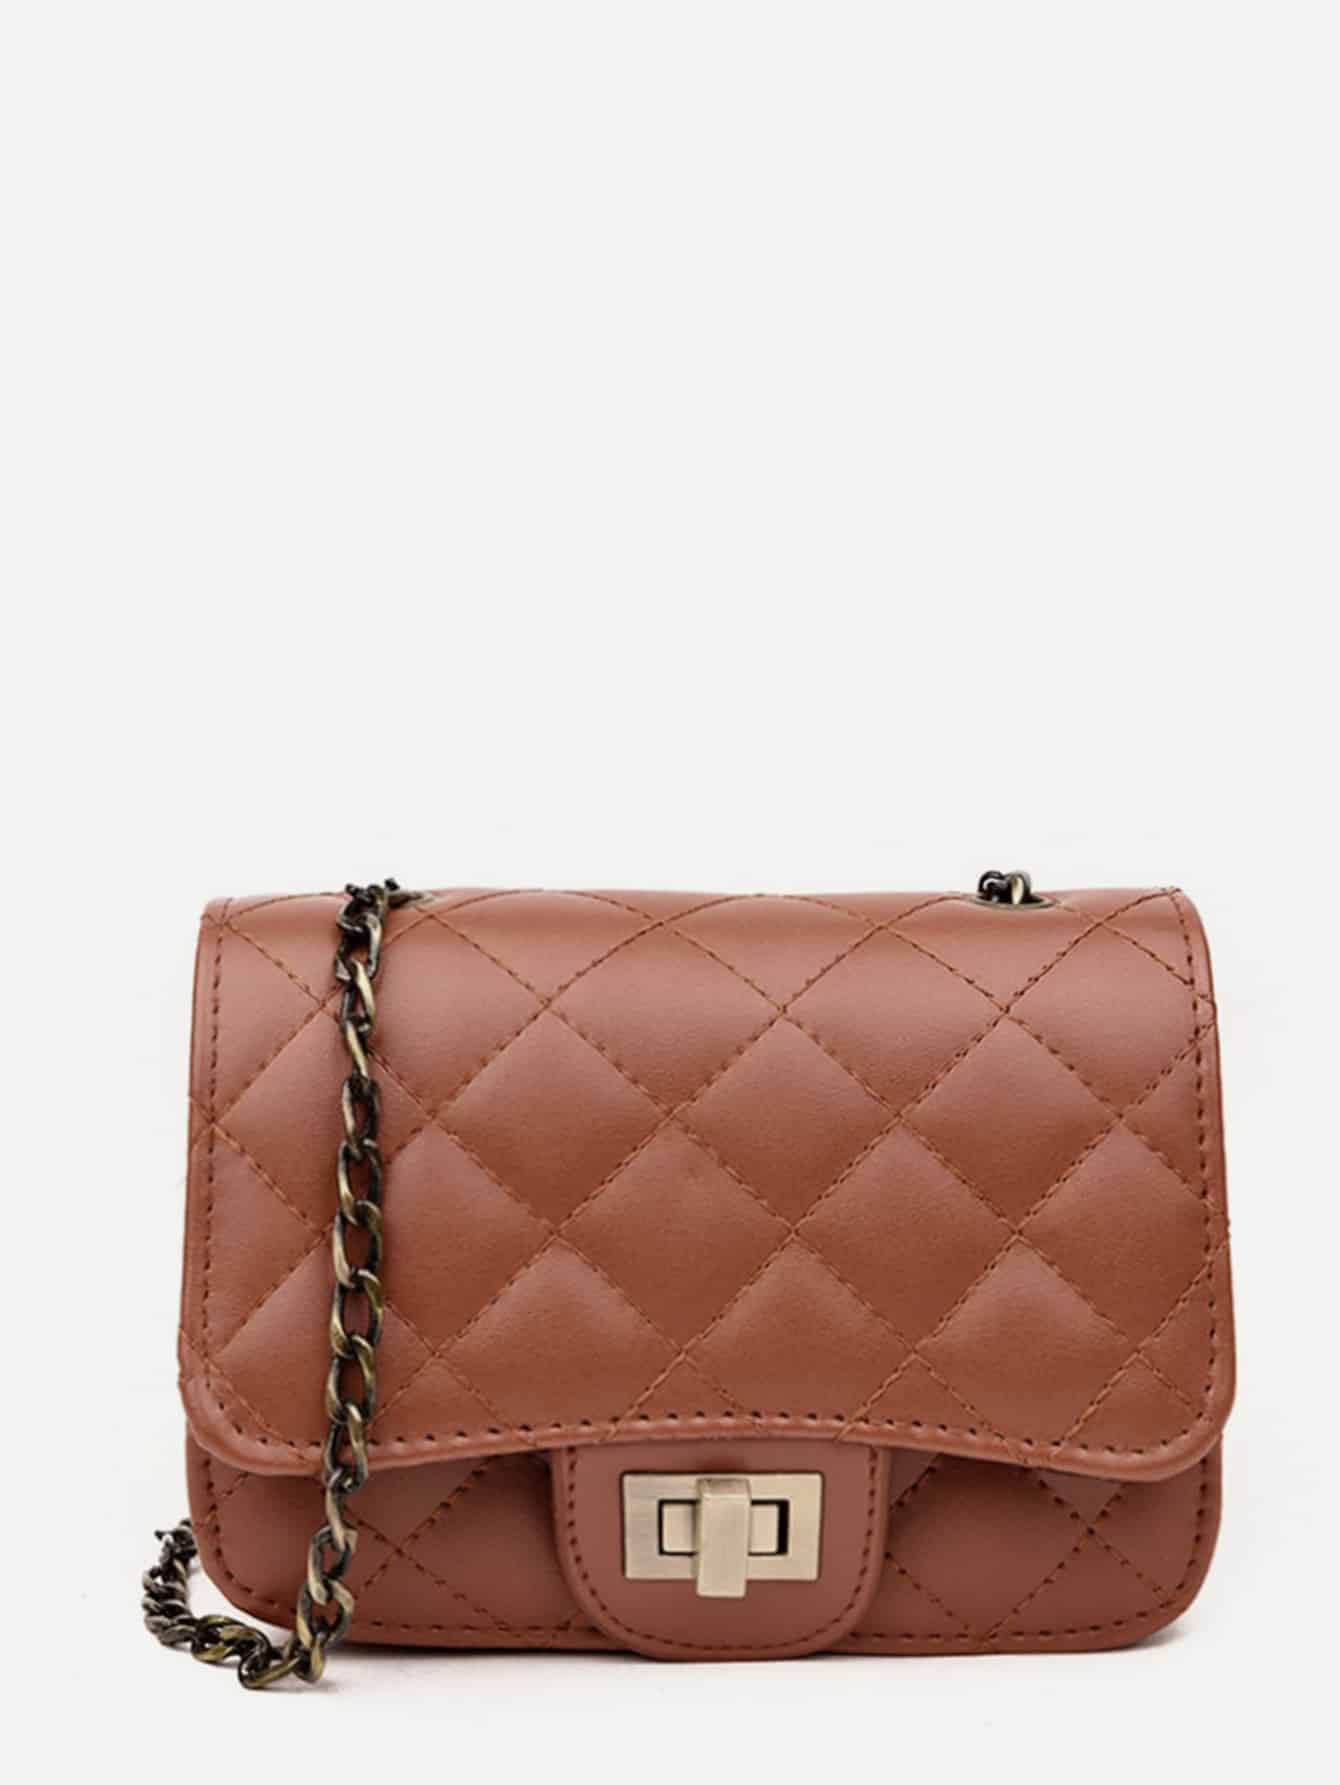 Twist Lock Quilted Chain Flap Bag